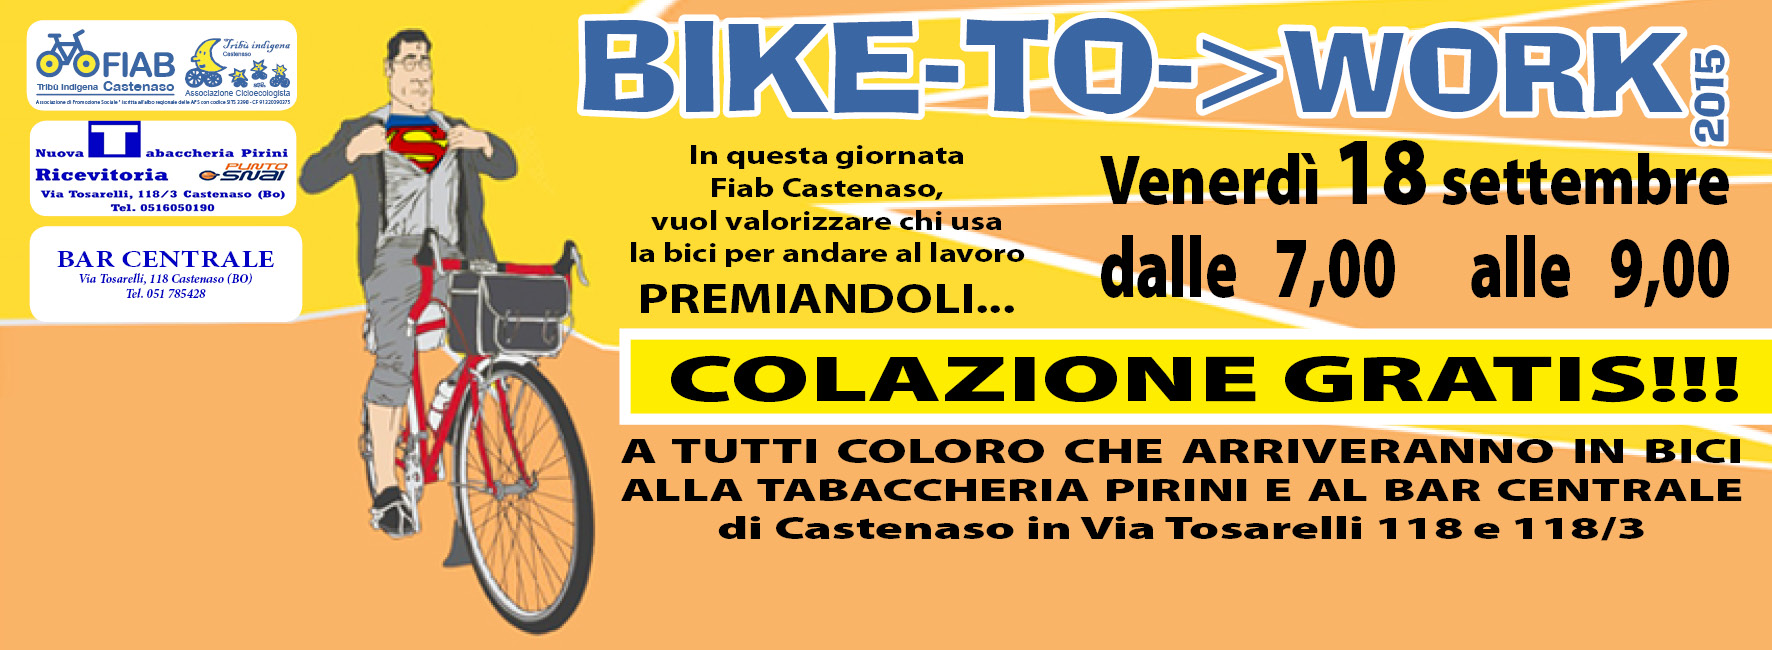 Bike to Work day a Castenaso (Bo)